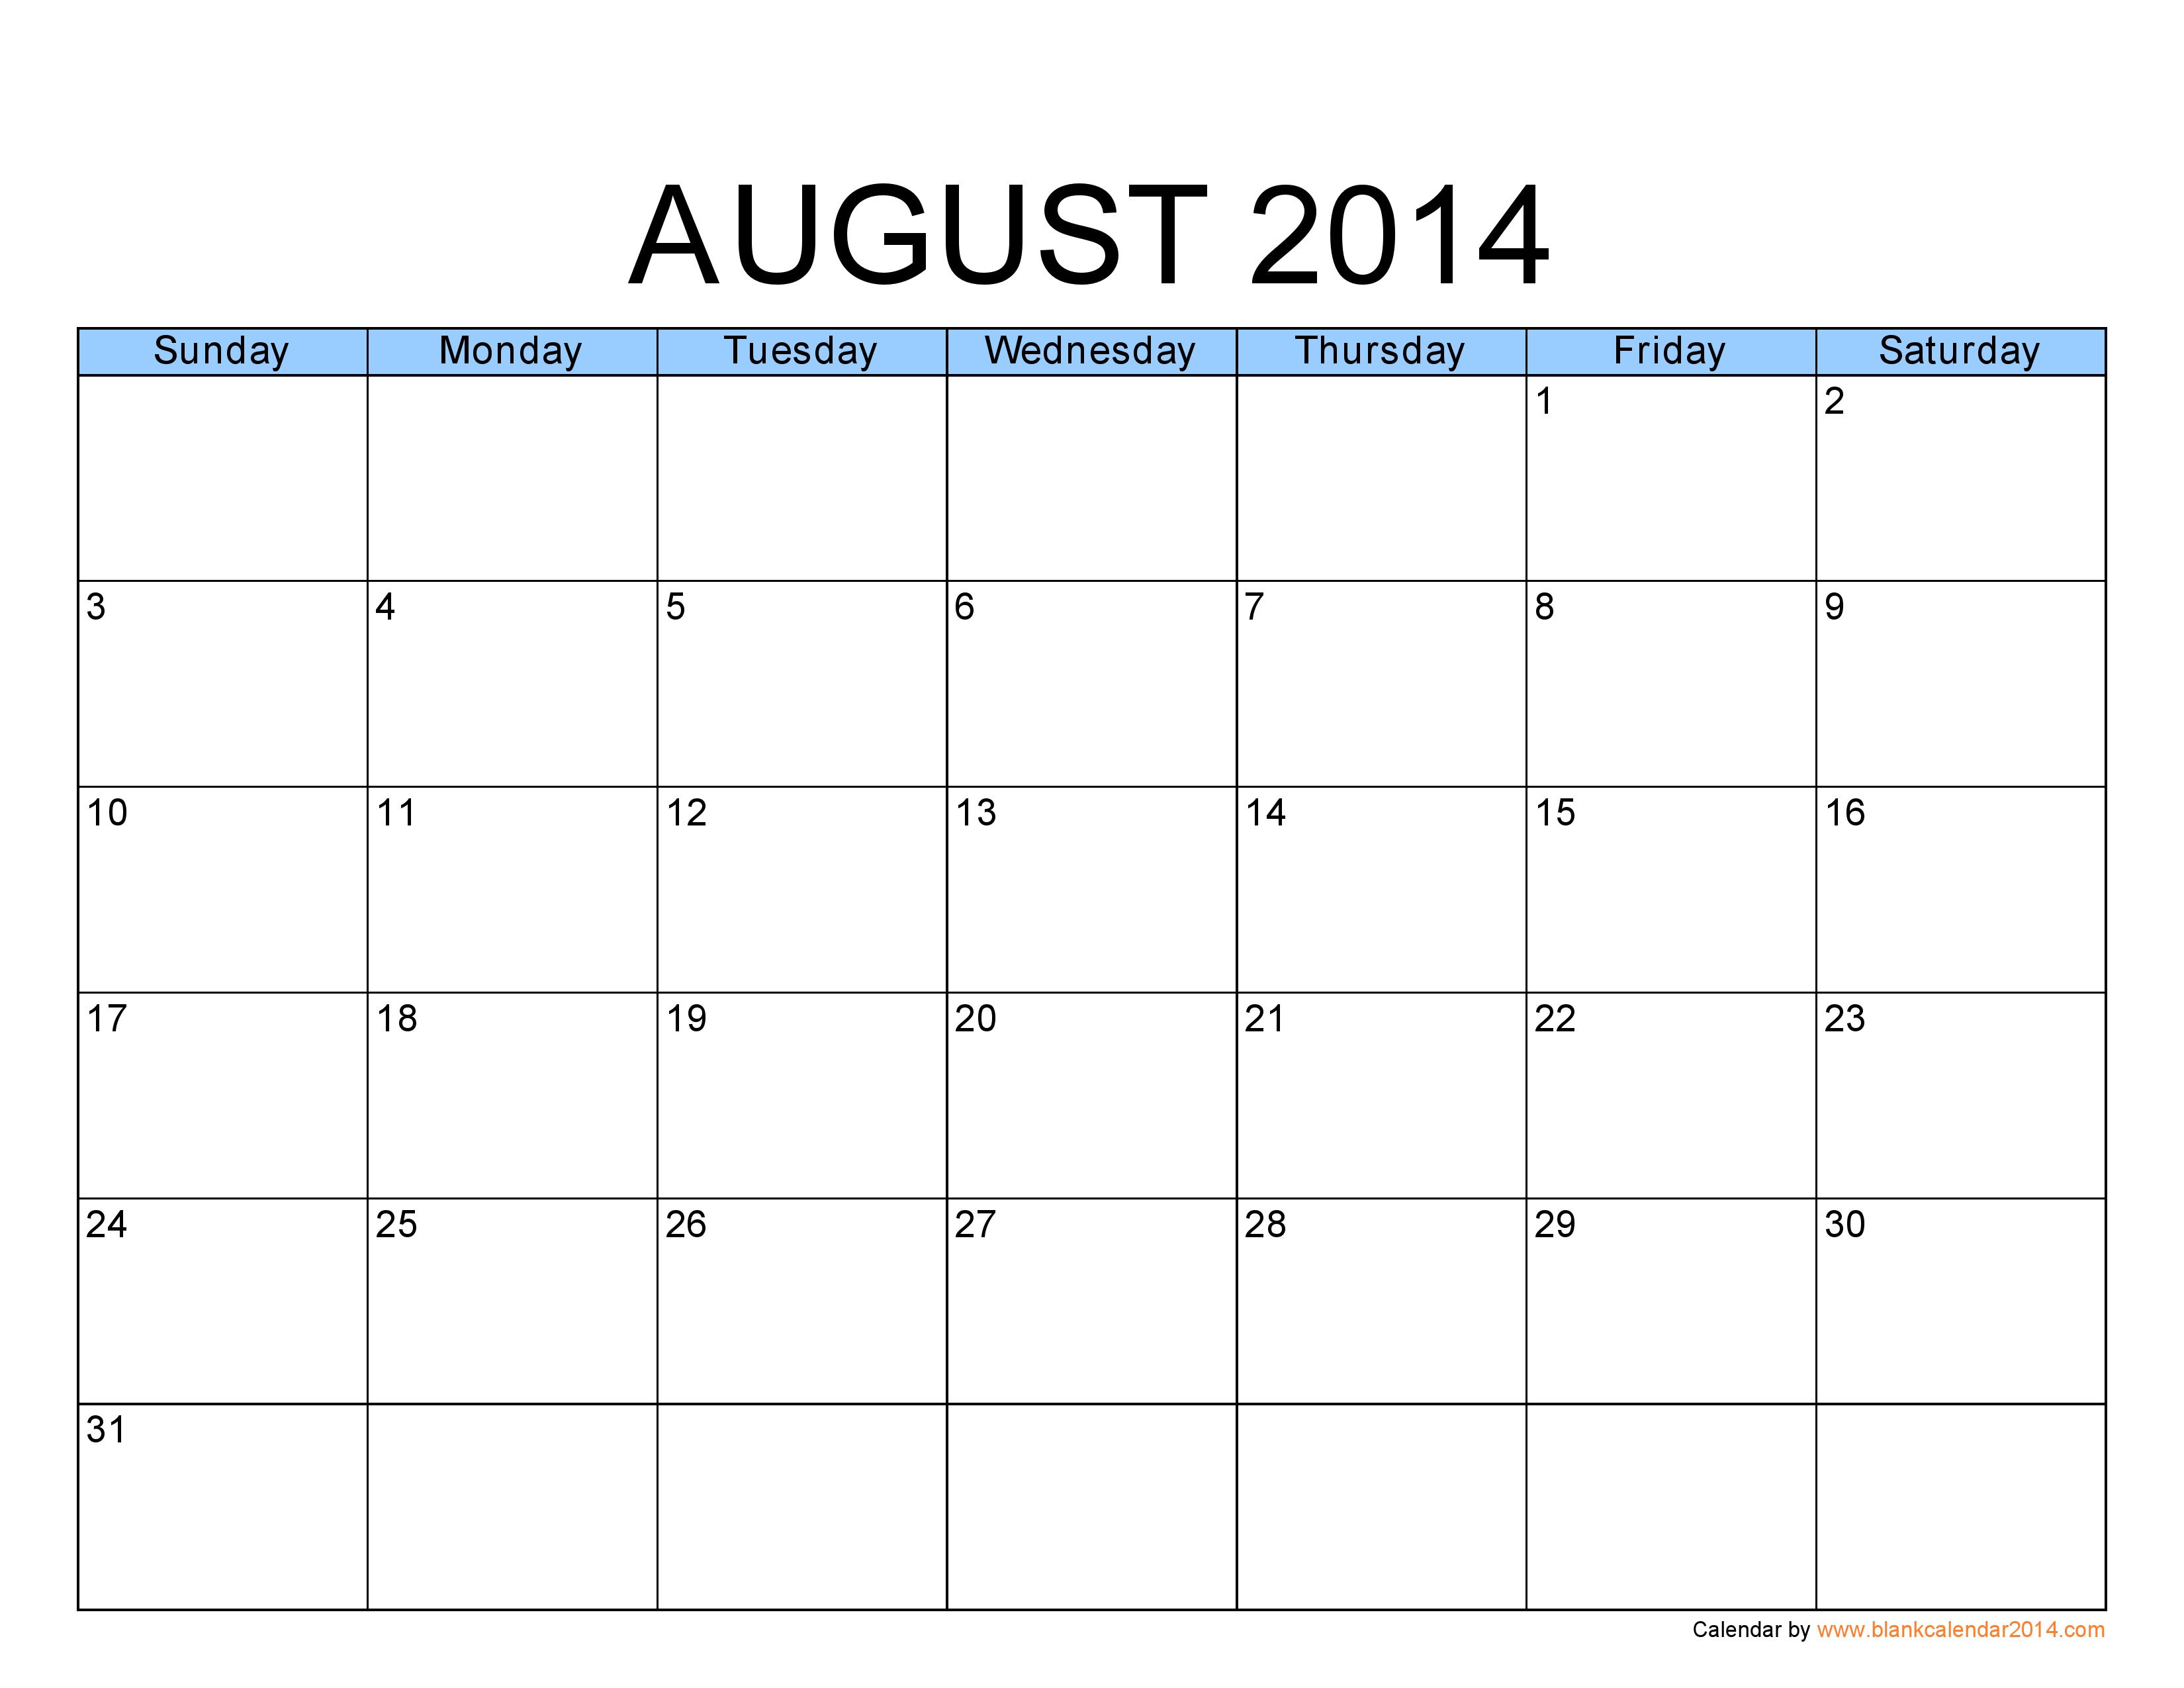 5 Images of Aug 2014 Calendar Printable Template